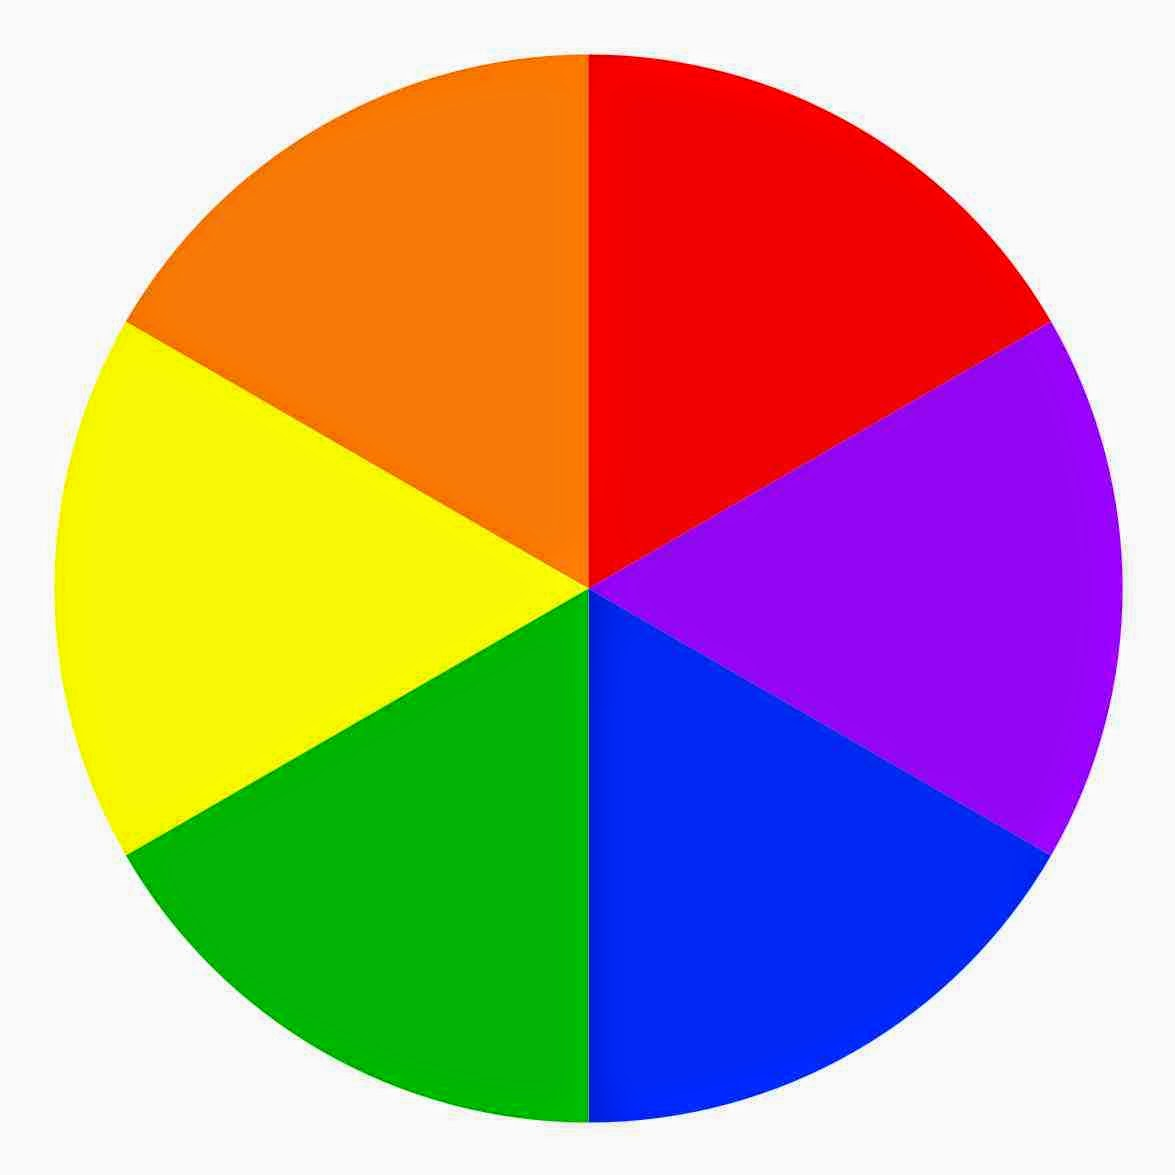 Secondary Colors - Imagine you had the three primary colors in eye shadow swatches on your arm. Now what would happen if you blended each of the lines where the colors meet? You get secondary colors!Orange, Violet, and Green.